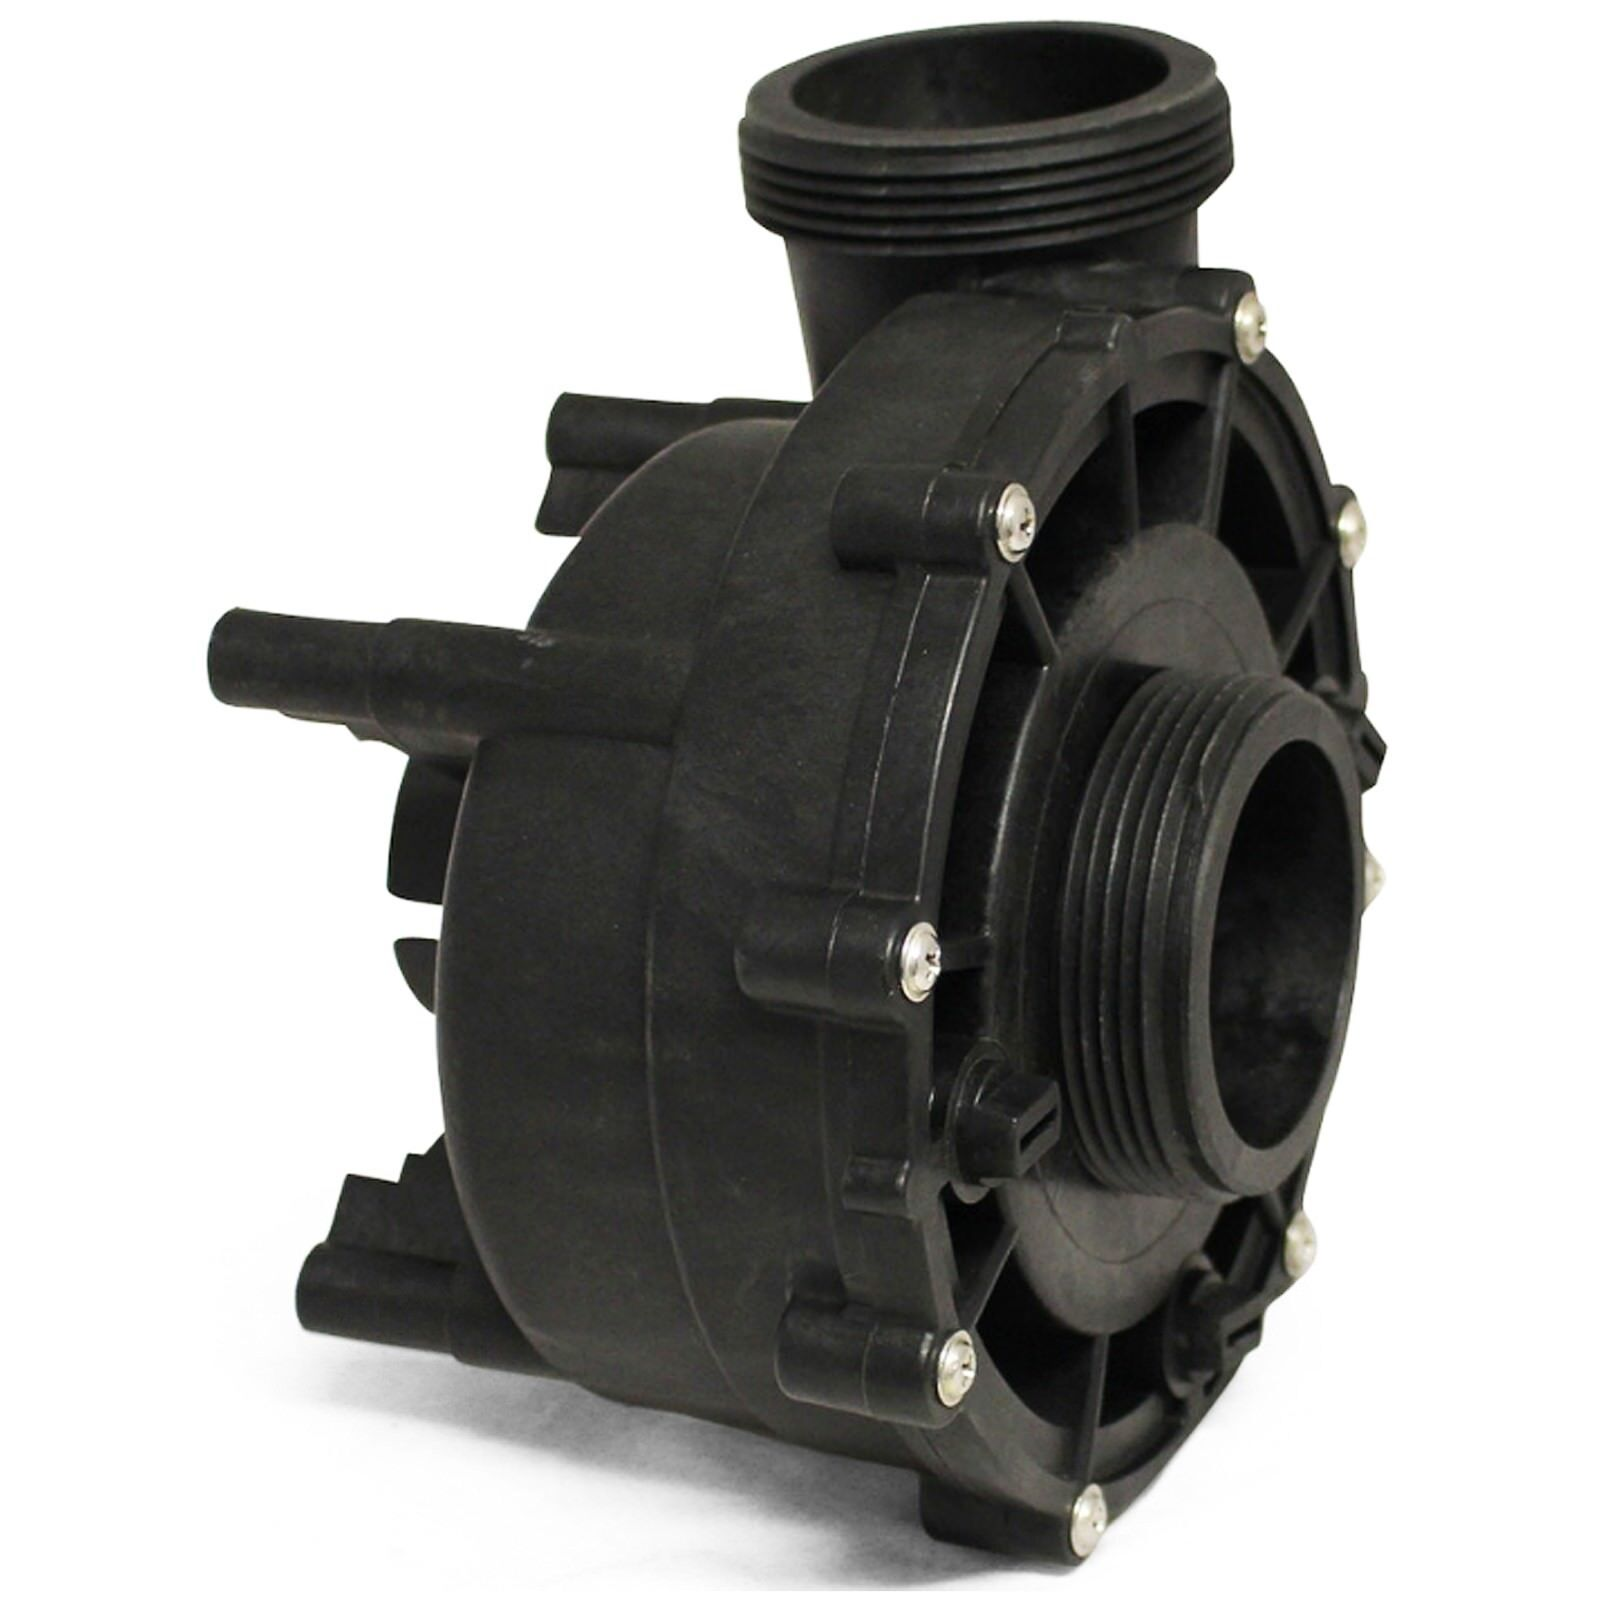 LX WP300 LP300 Wet End - Hot Tub Pump Parts